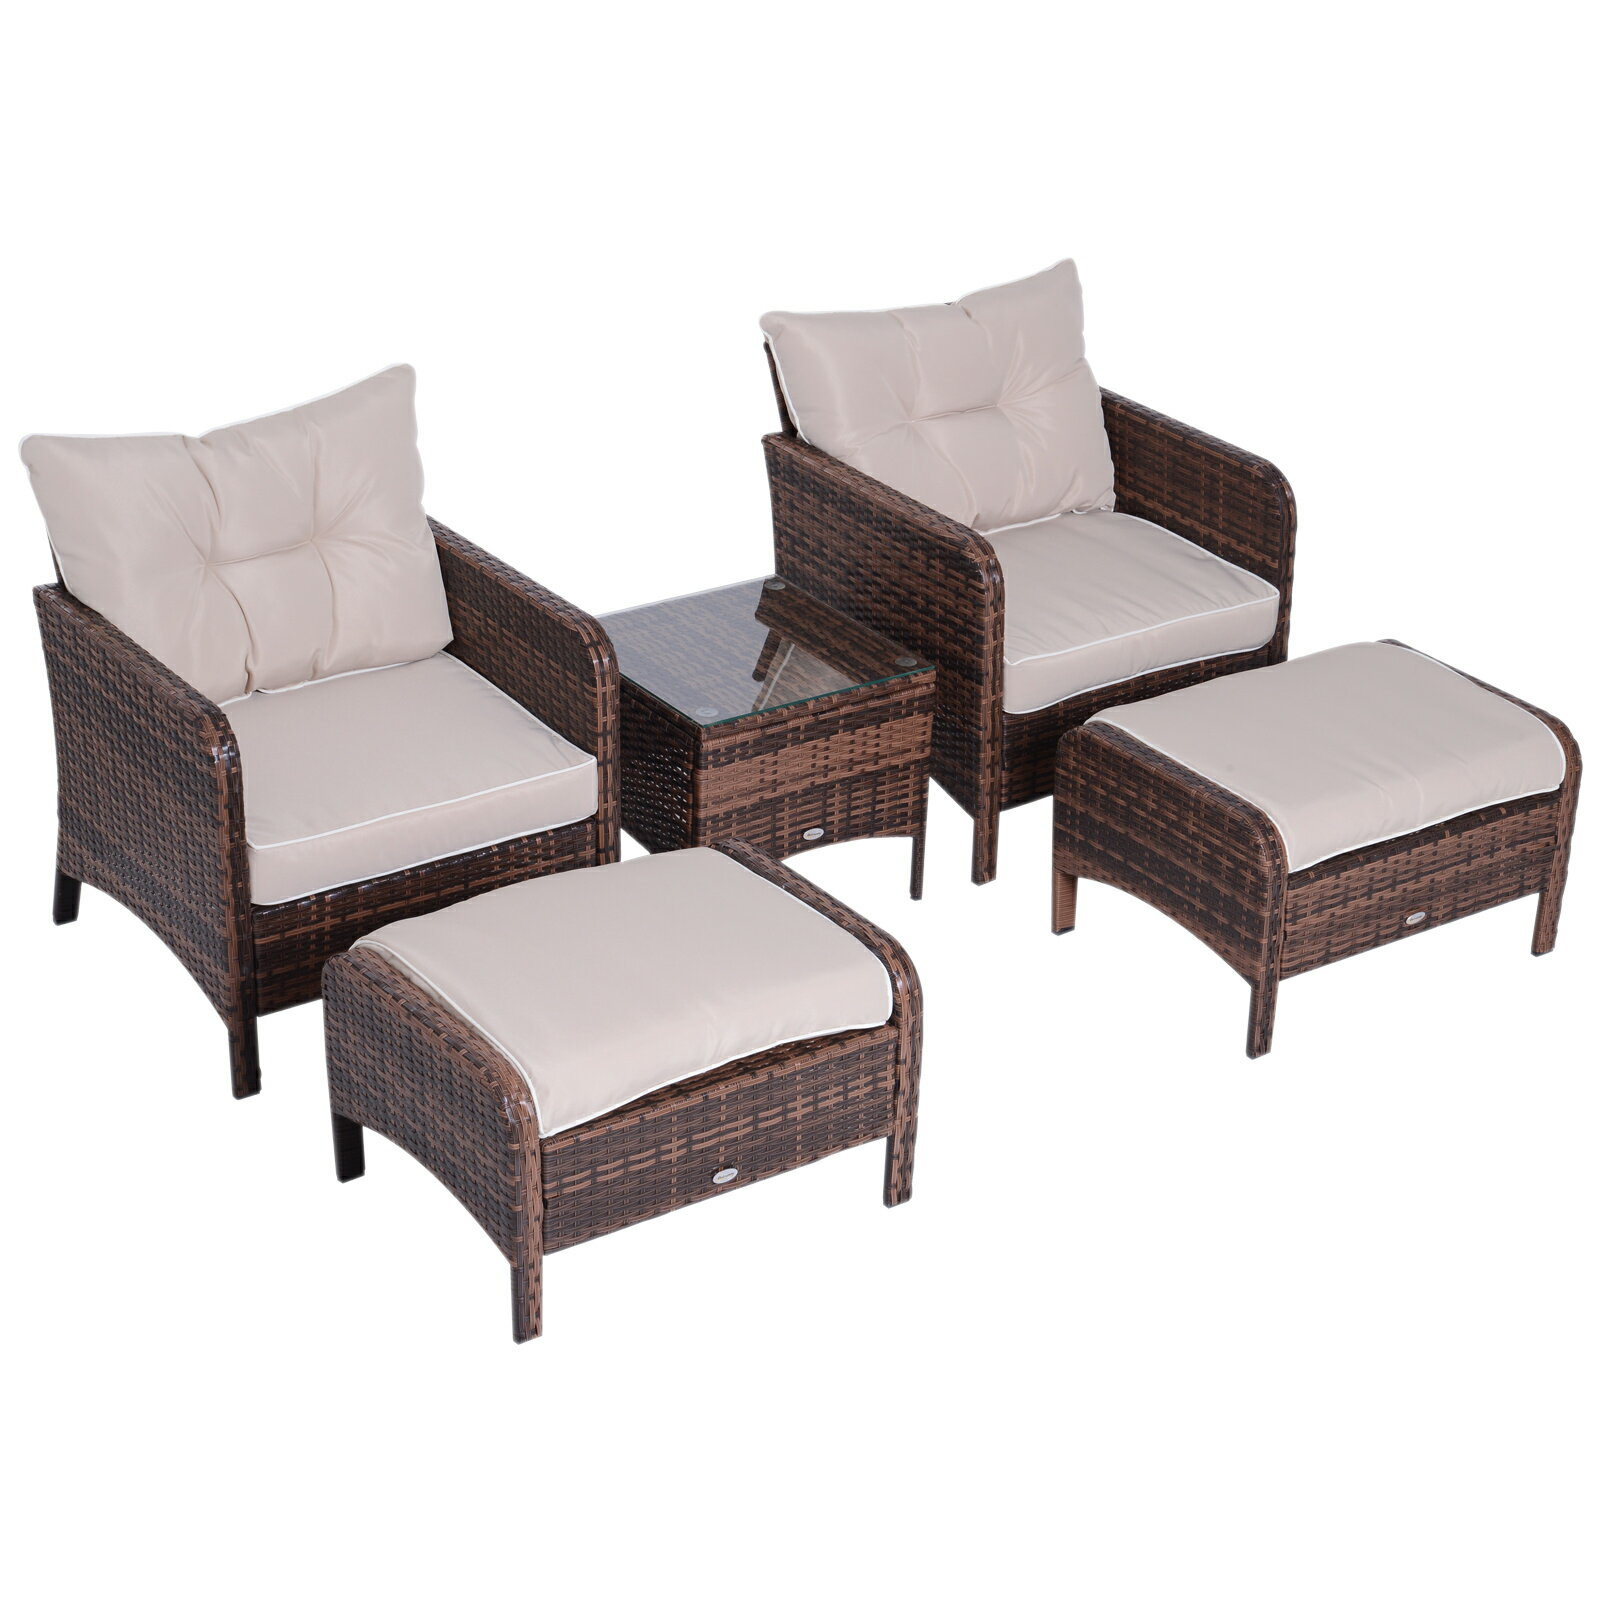 Outsunny 5 Piece Rattan Wicker Outdoor Patio Conversation Set With 2 Cushioned Chairs Ottomans